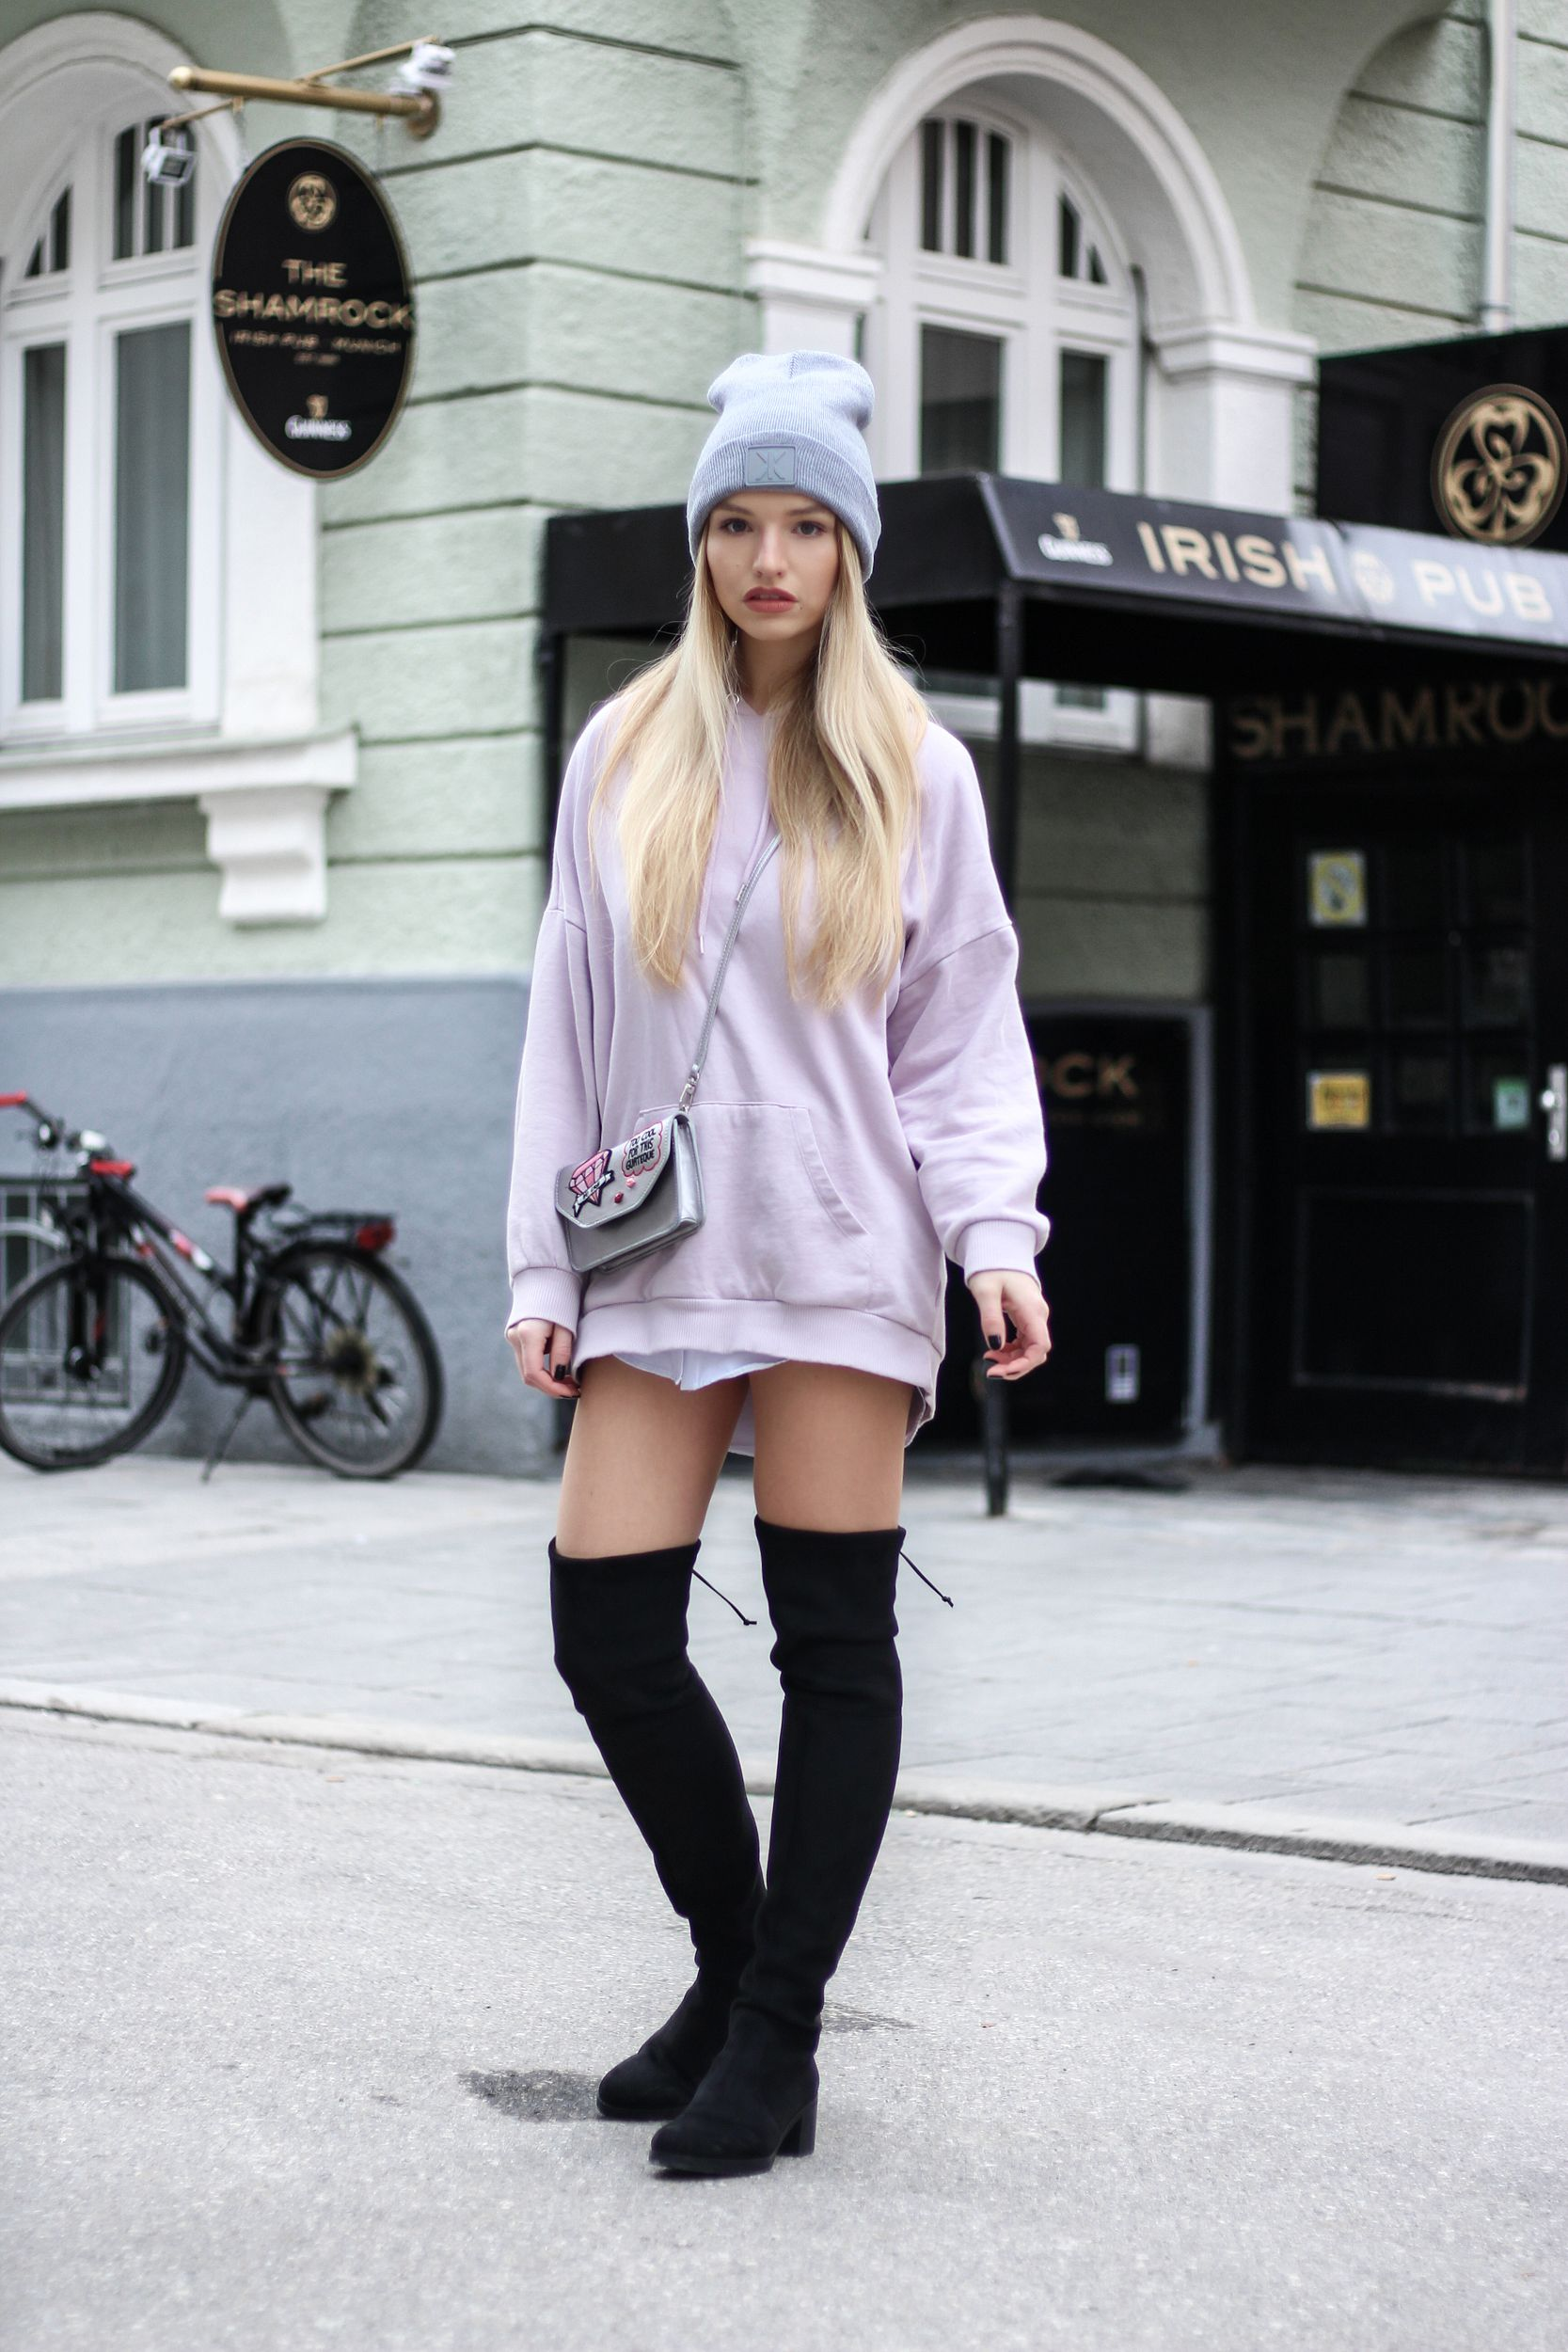 ... look outfit sexy high heels legs woman girl babe wear wearing otk knee  thigh boots Outfit  Overknee Stiefel und Oversize Hoodie – Modeblog aus  München 9145c23595